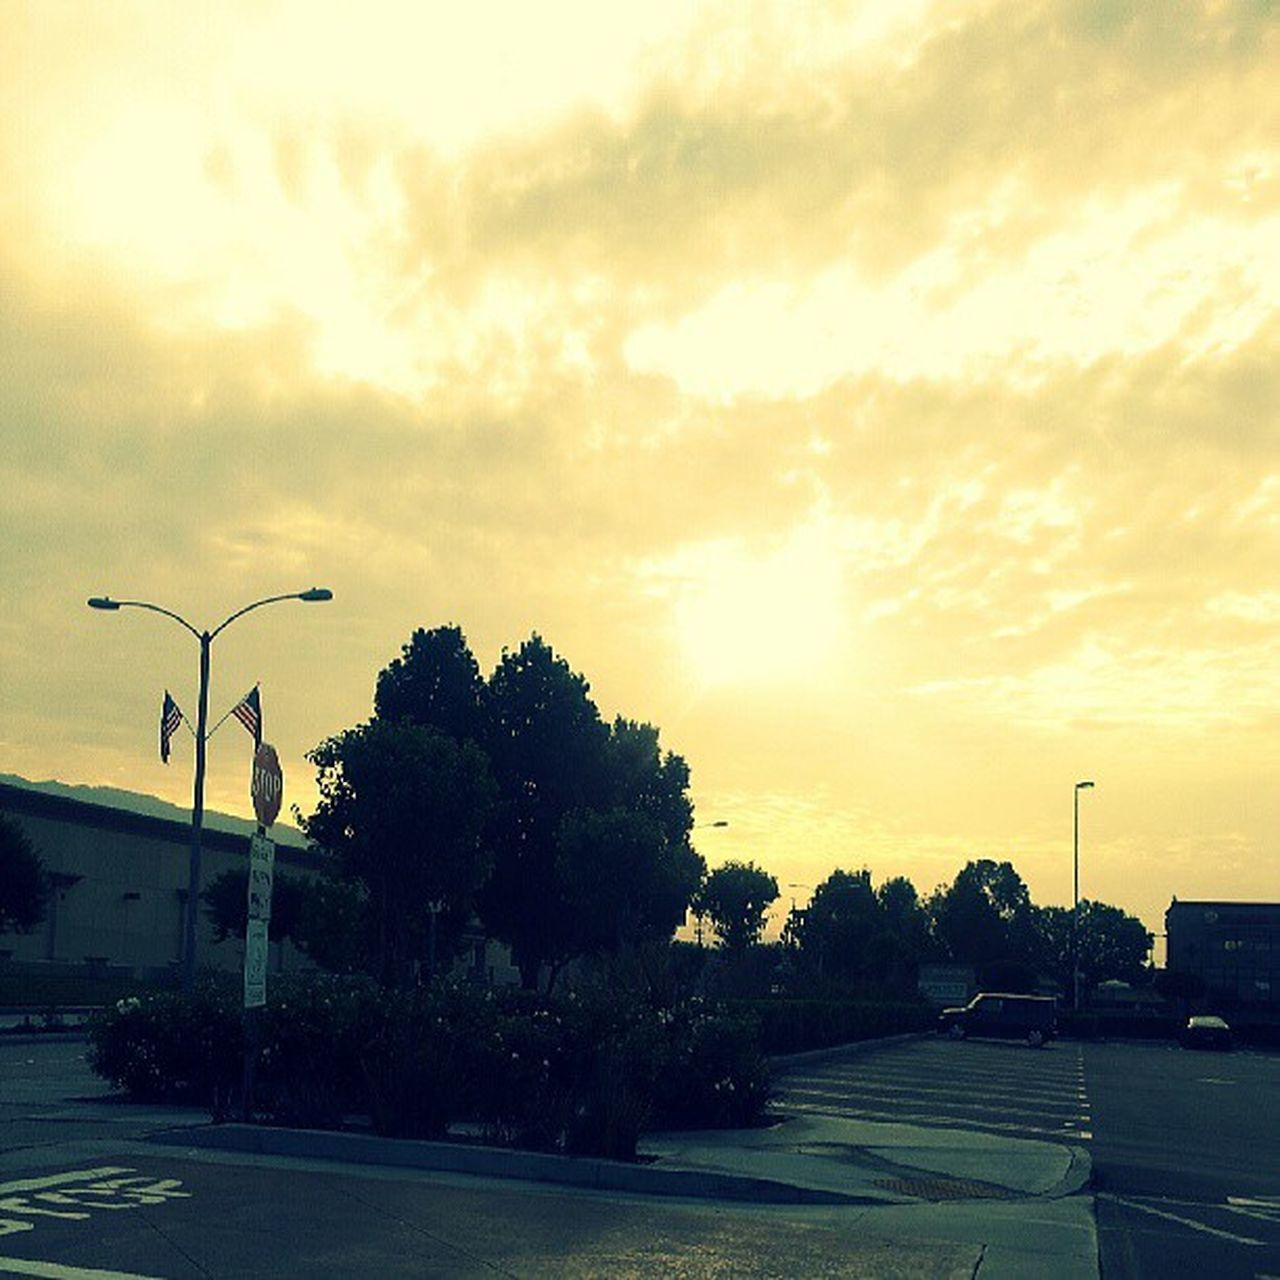 tree, sky, sunset, cloud - sky, transportation, road, car, street light, outdoors, no people, nature, day, beauty in nature